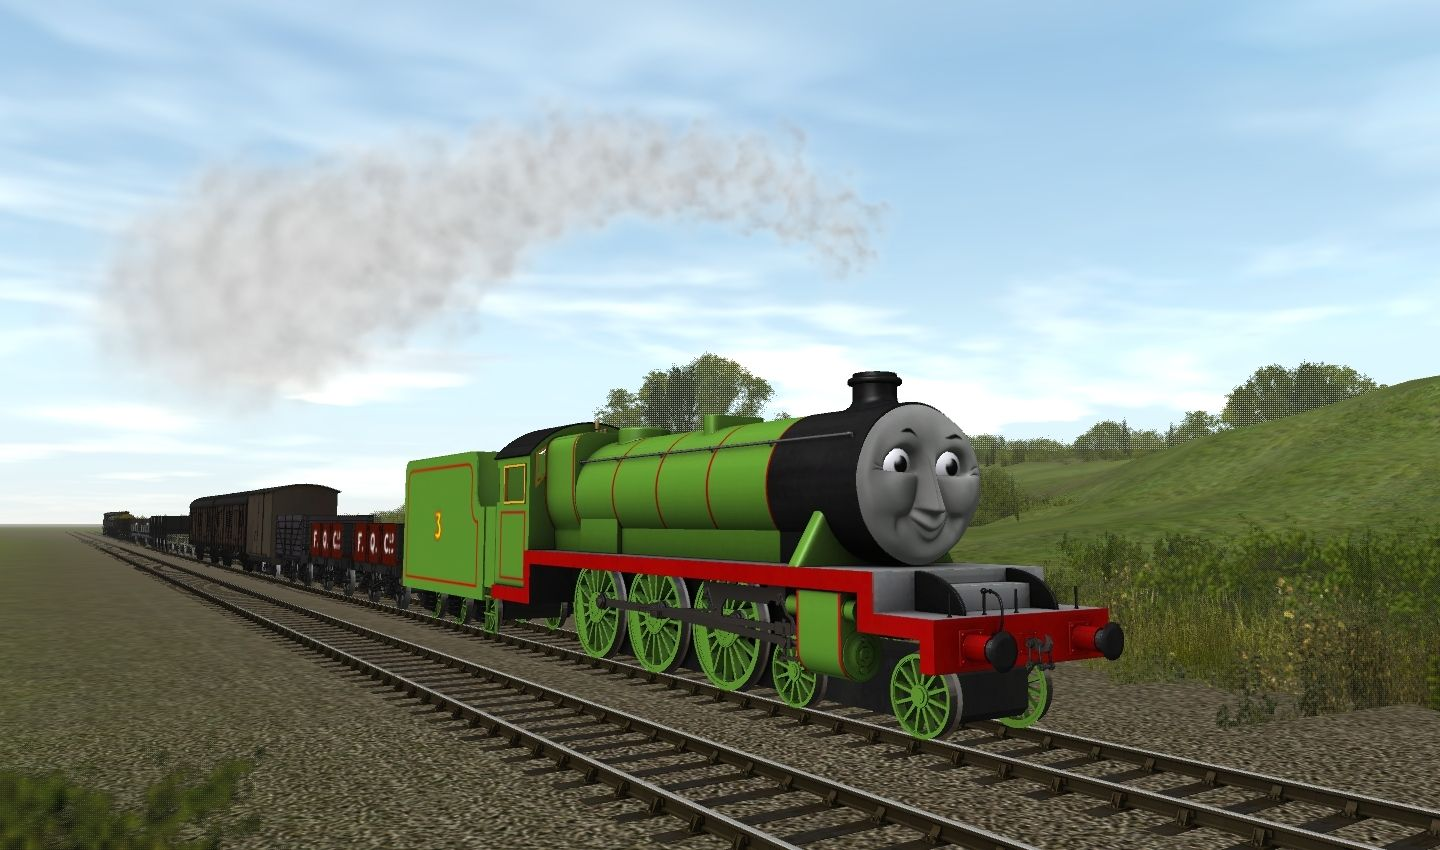 Thomas bremse van trainz downloads - doubttocgouja tk